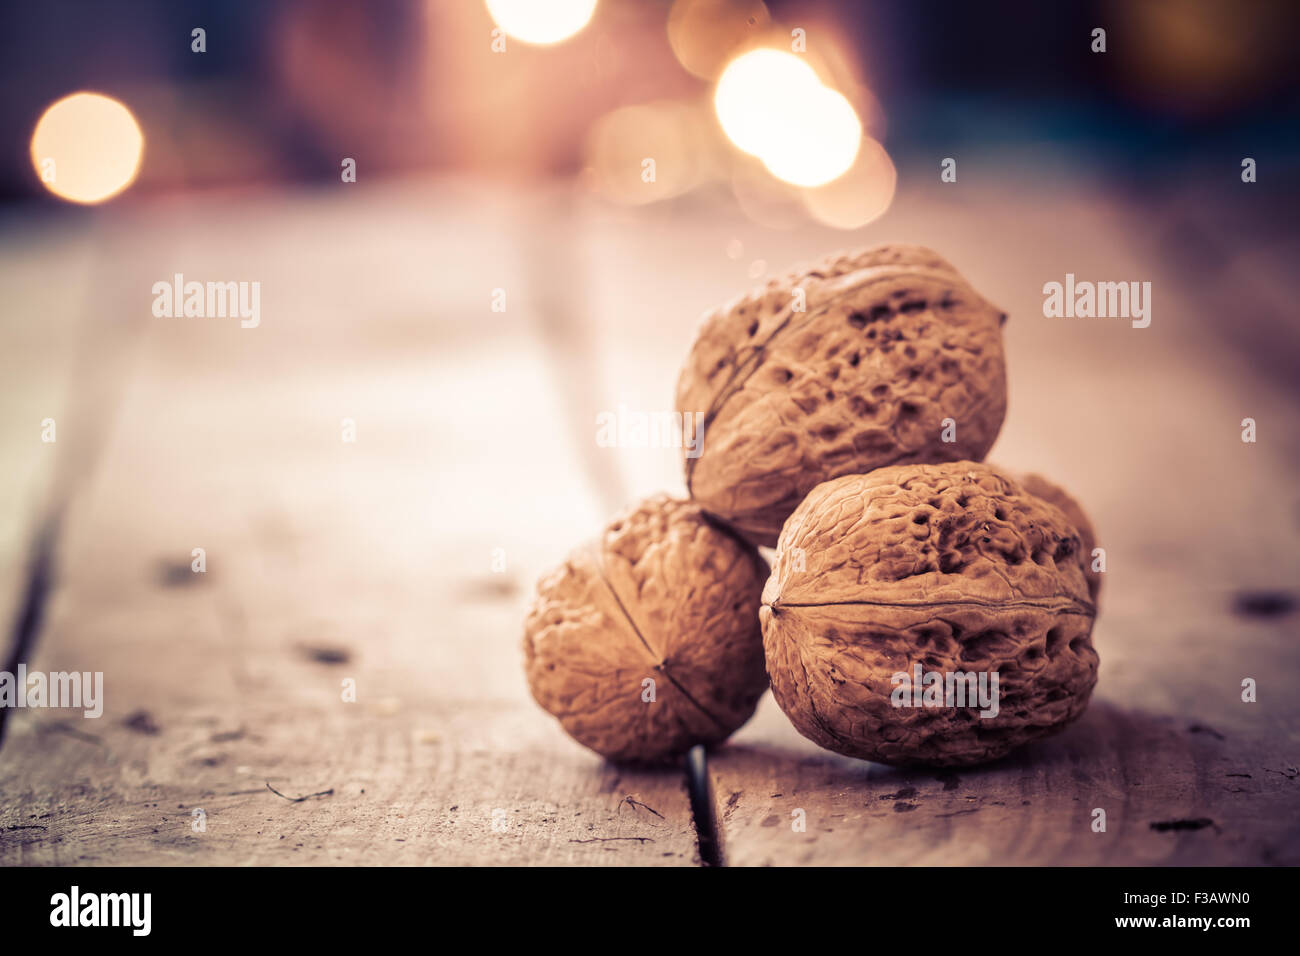 Walnuts on an old wooden table. Christmas background. Stock Photo